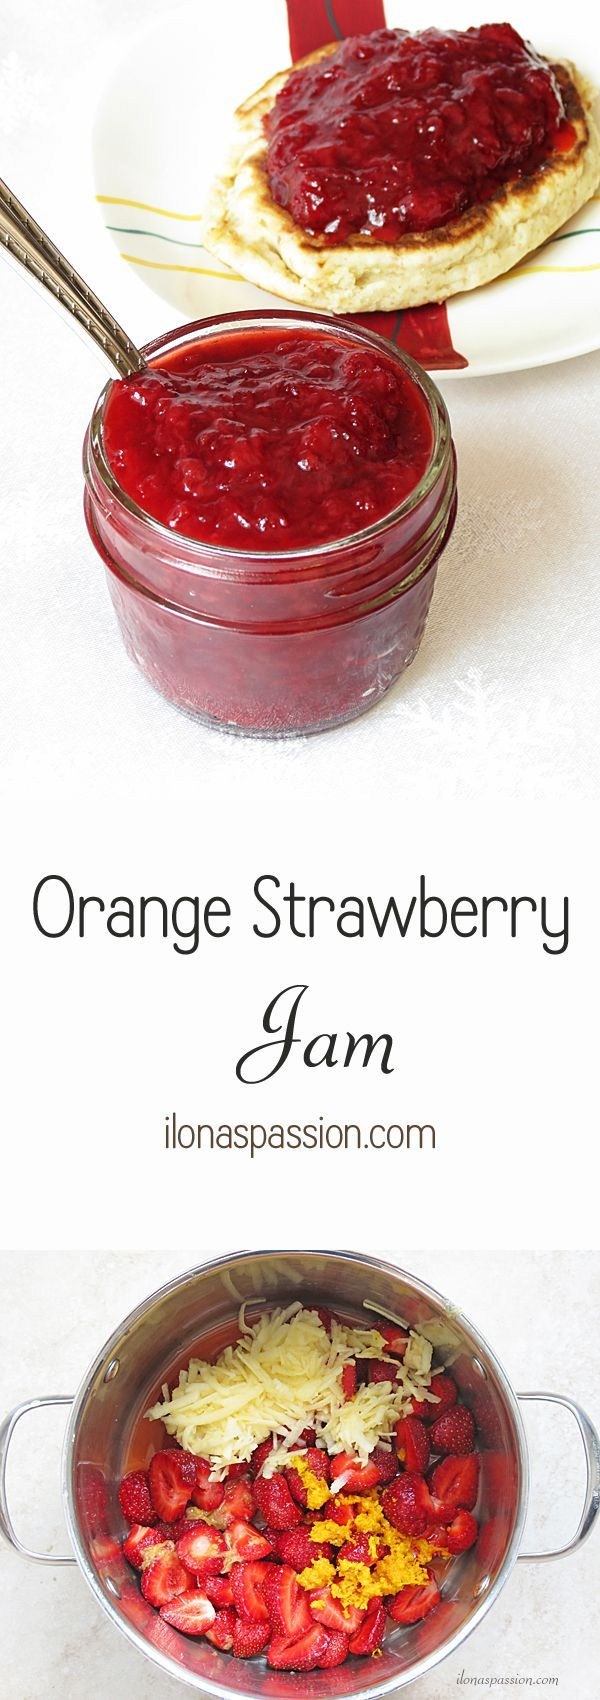 Strawberry jam with orange, lemon and apple flavor by http://ilonaspassion.com…